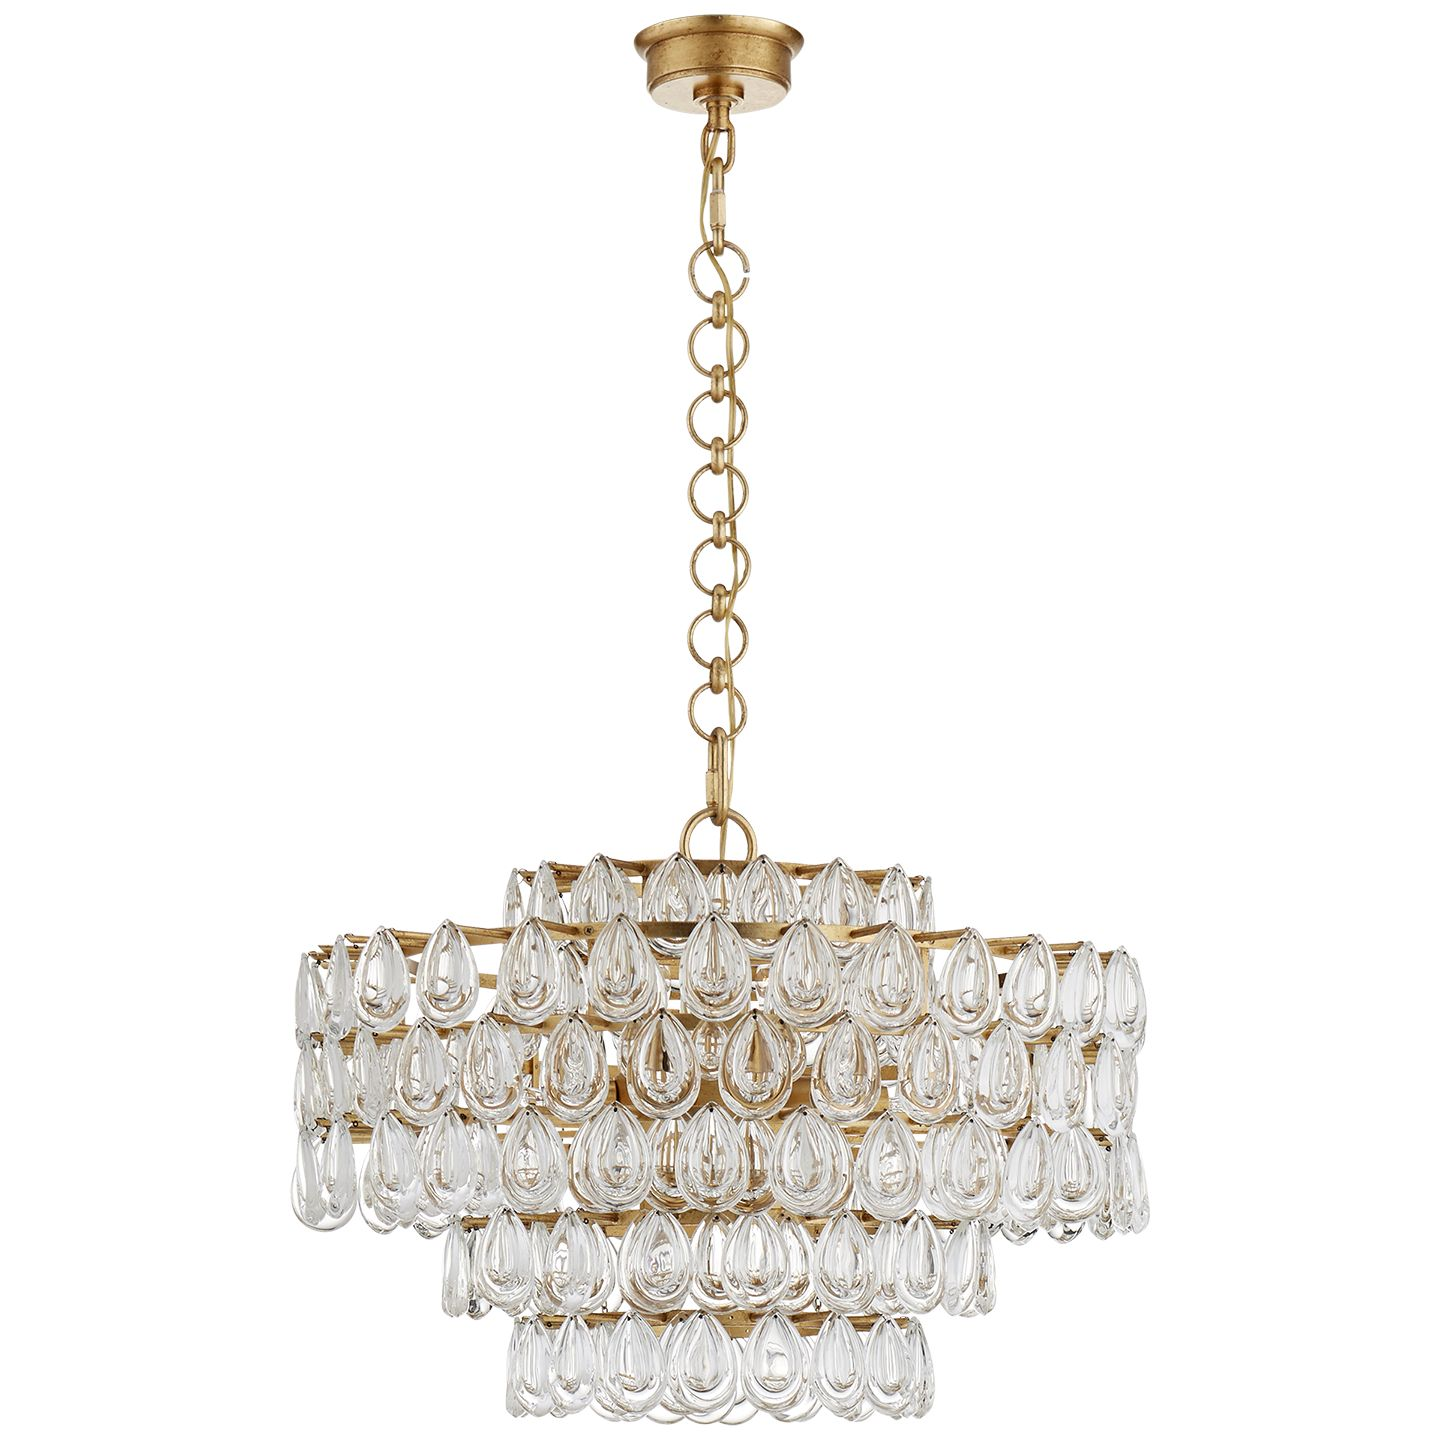 Visual Comfort ARN5173G-CG AERIN Liscia Chandelier in Gild with Crystal |  FoundryLighting.com - Visual Comfort ARN5173G-CG AERIN Liscia Chandelier In Gild With